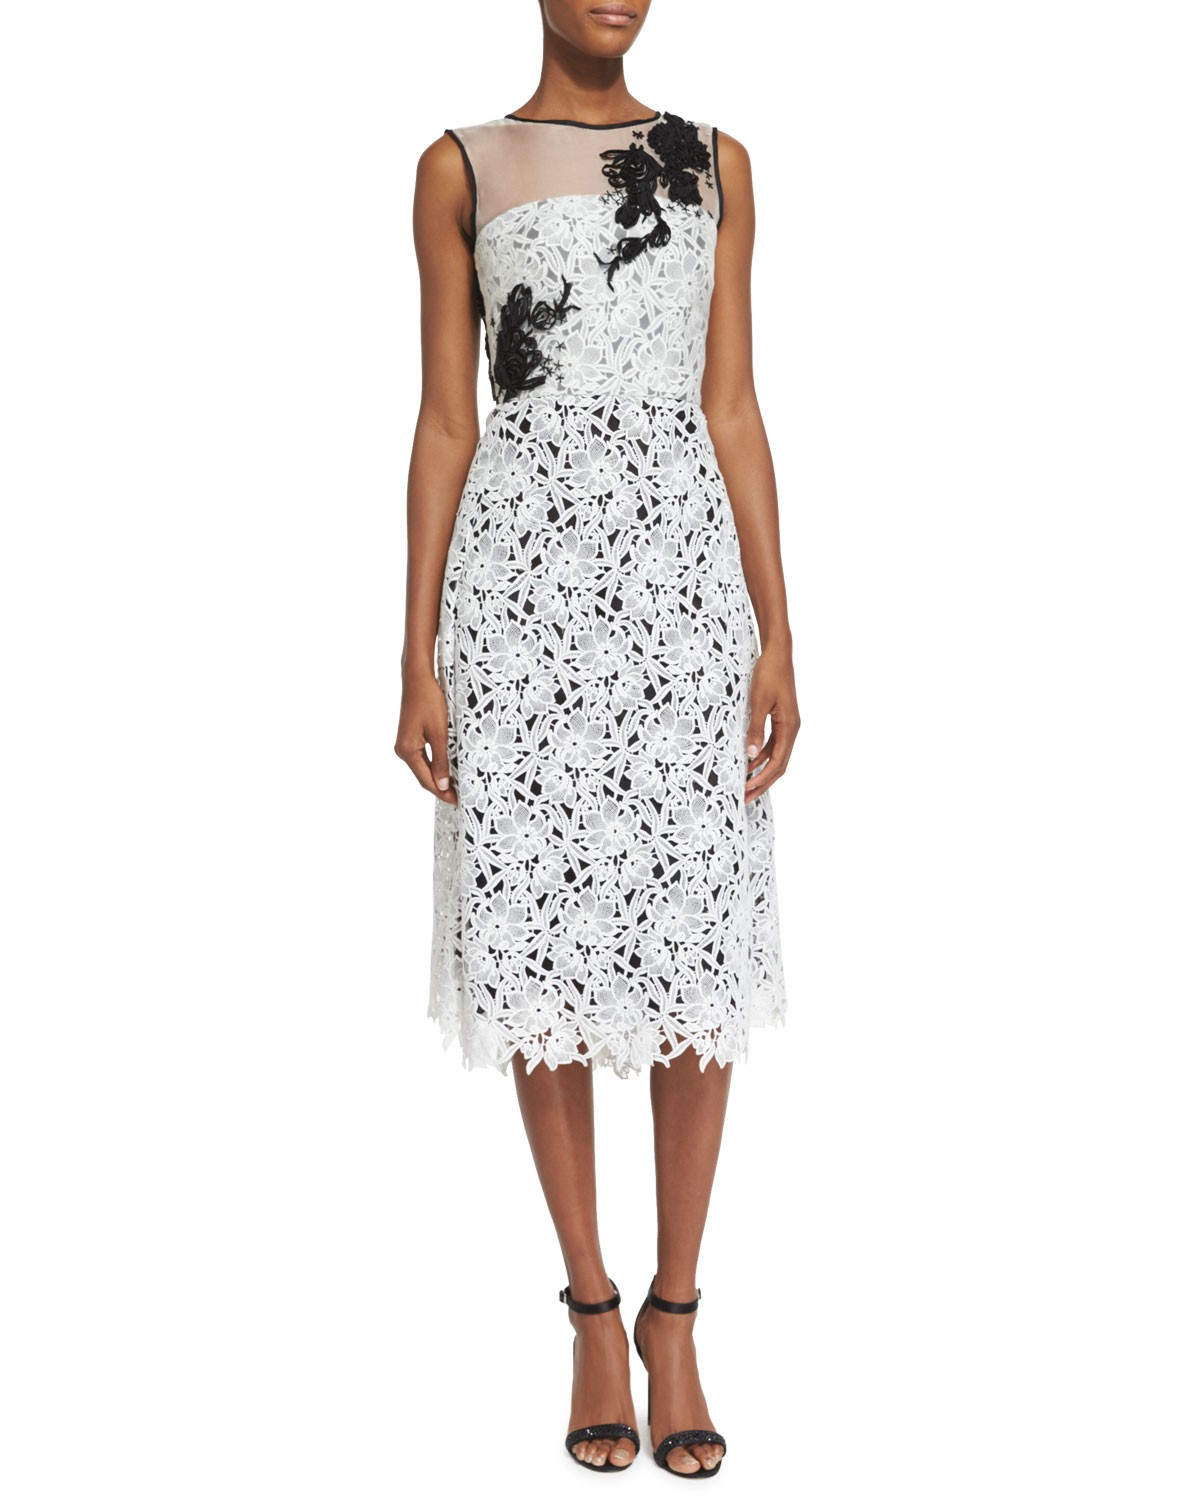 Sleeveless Lace Cocktail Dress, White/Black, Size: 6 - Oscar de la Renta